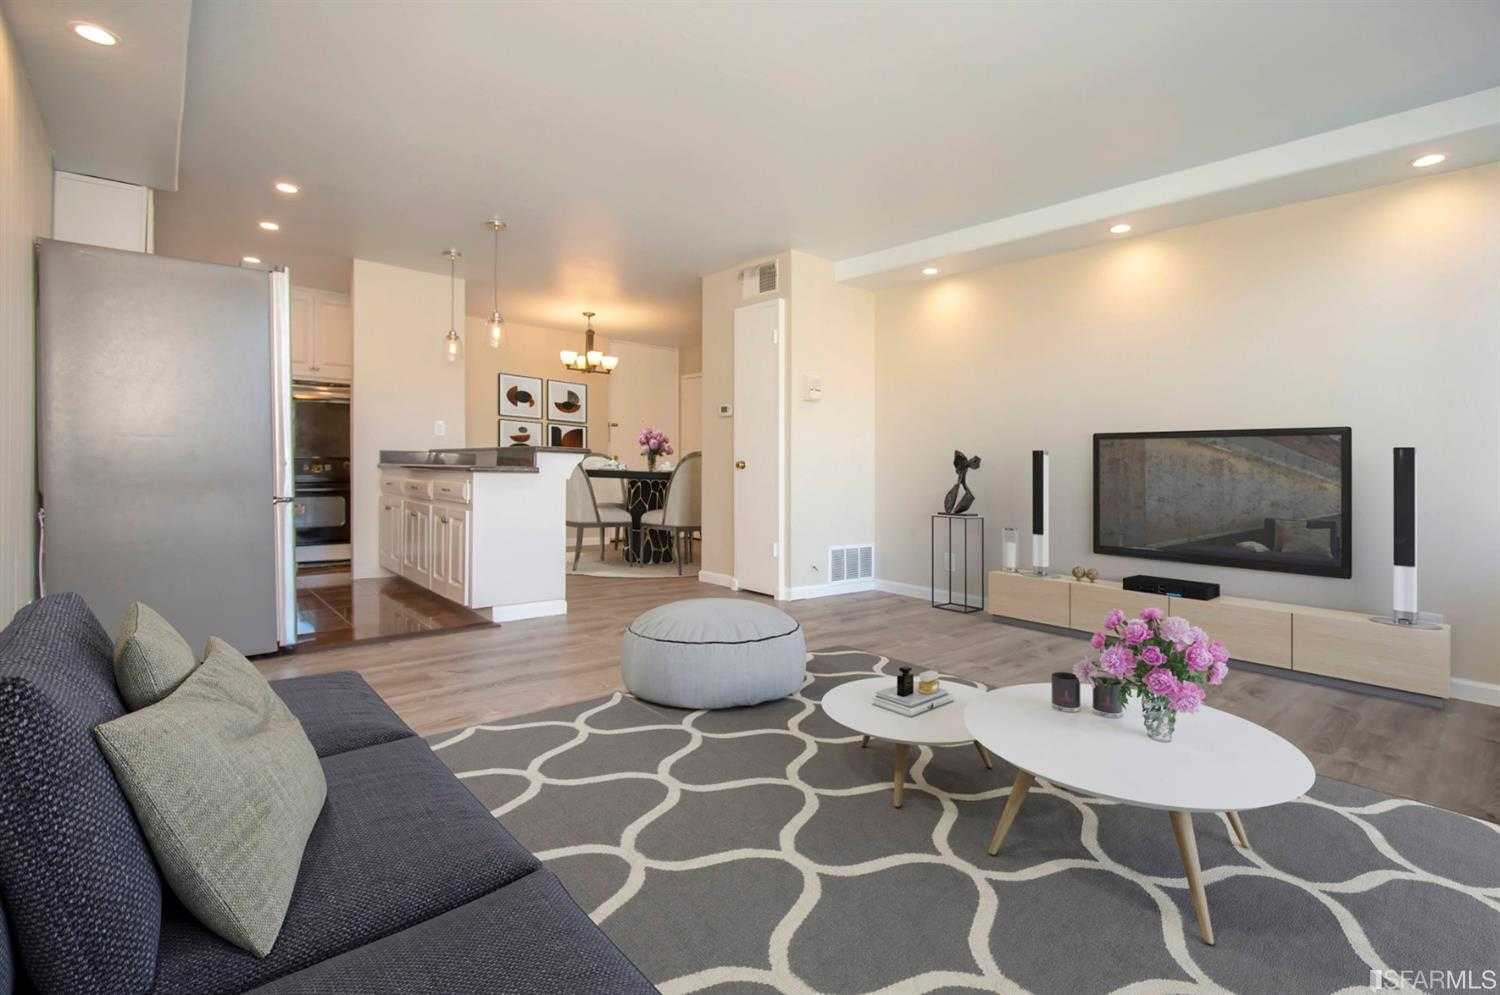 $549,000 - 1Br/1Ba -  for Sale in San Mateo